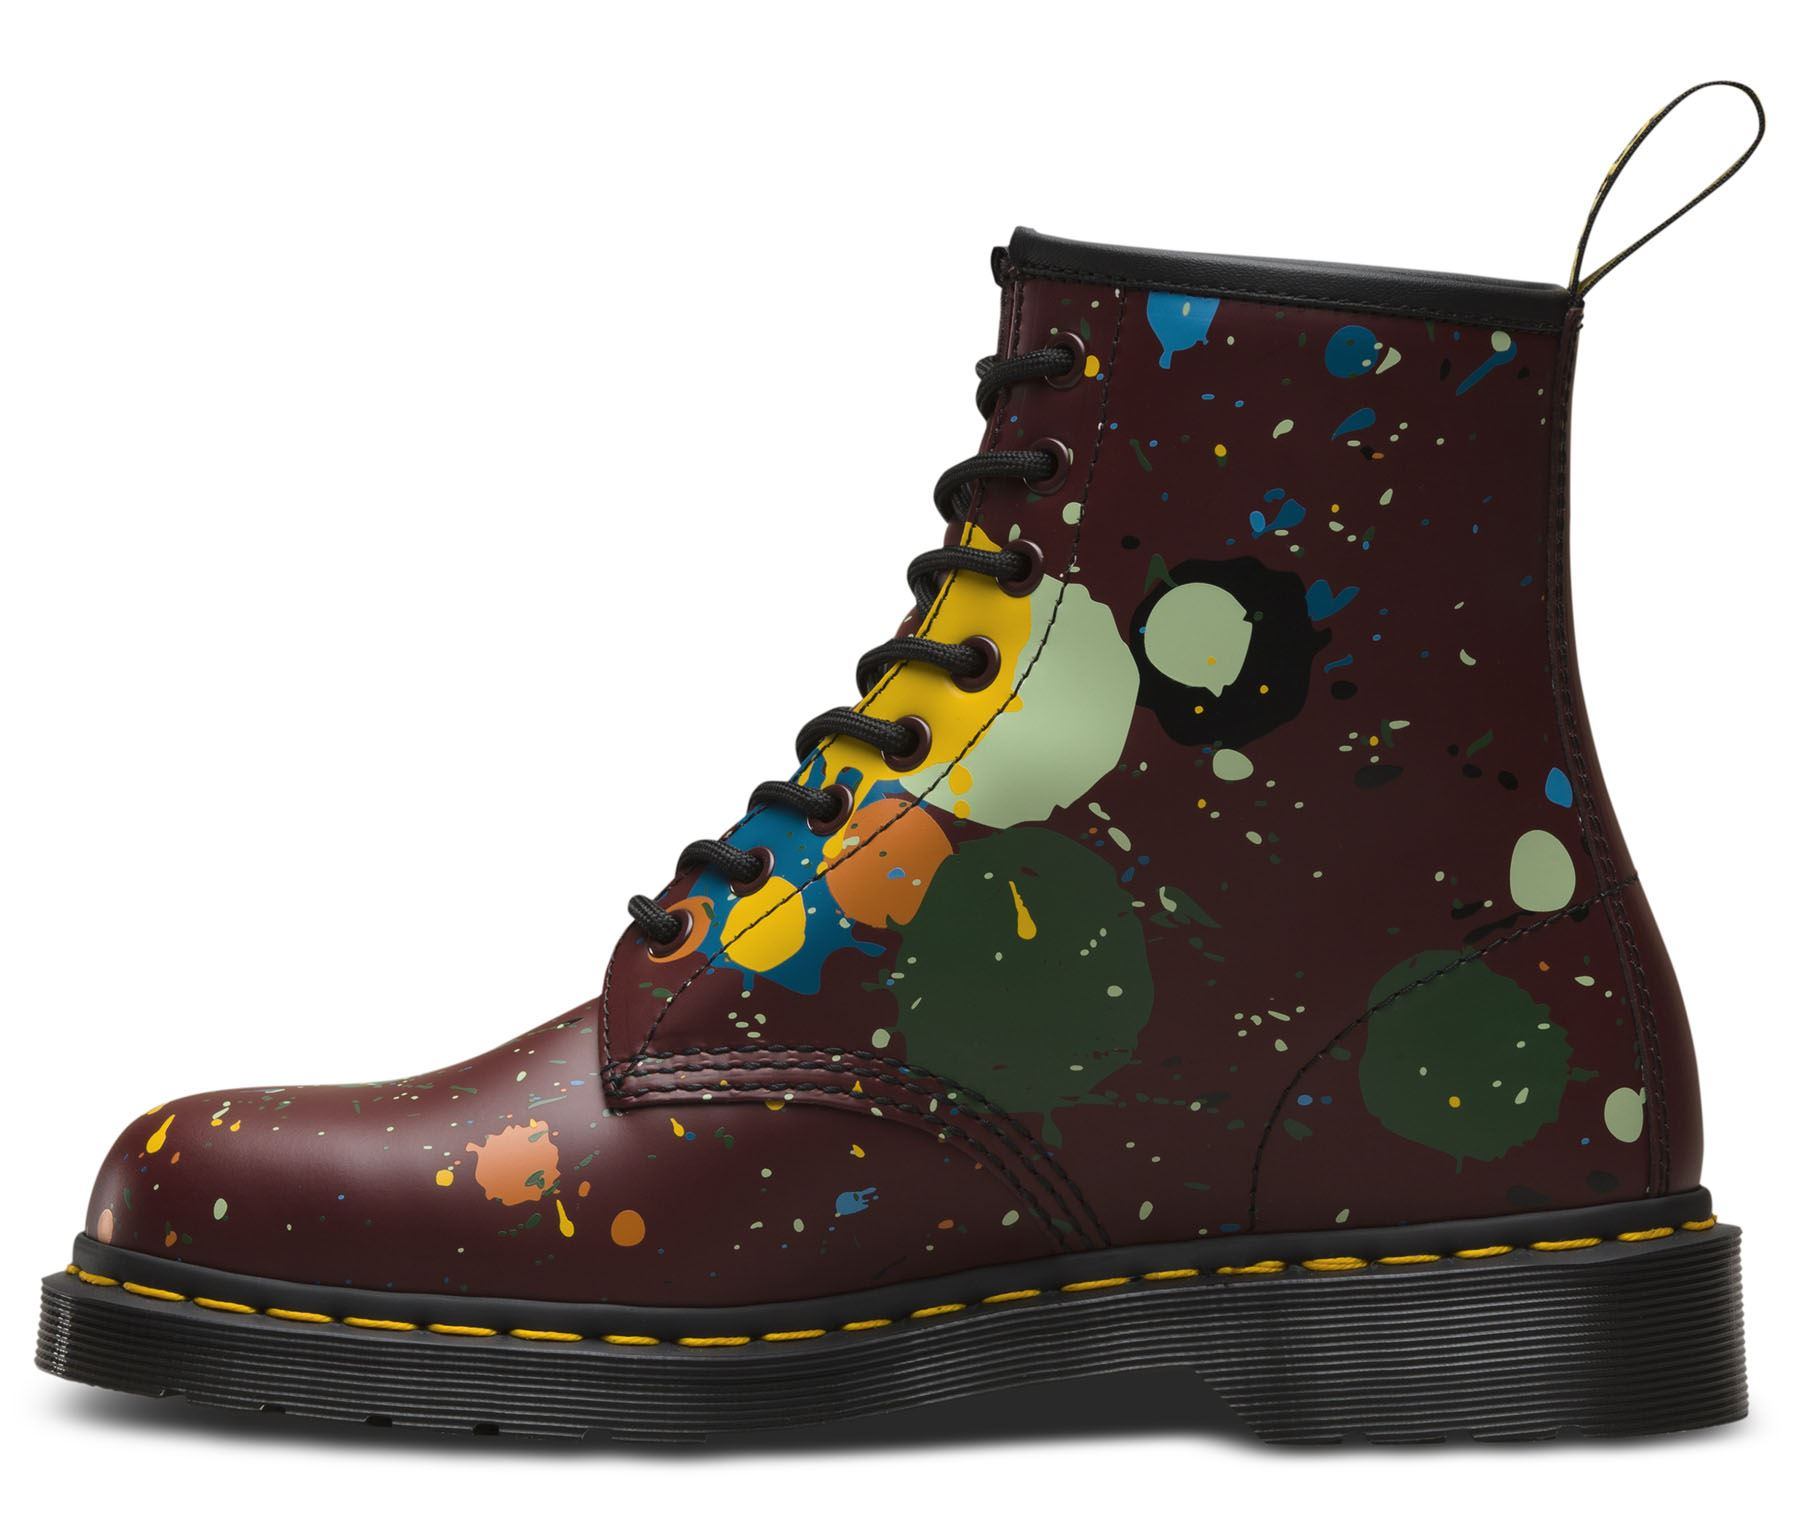 Dr Martens Paint Unisex 1460 Cherry Red Paint Martens Splatter Smooth Leather 8 Eye Boots a140cb